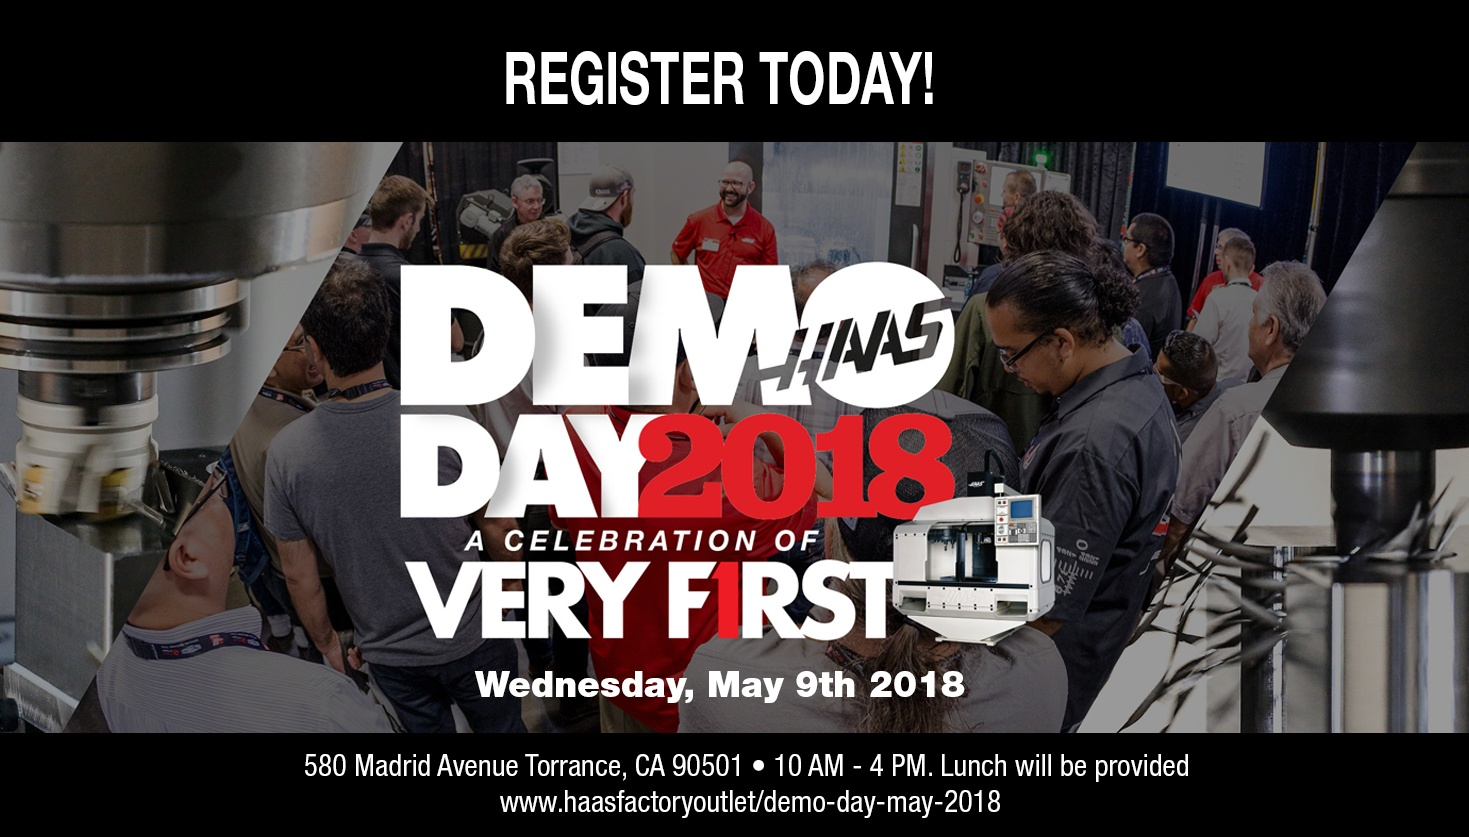 Demo Day 2018